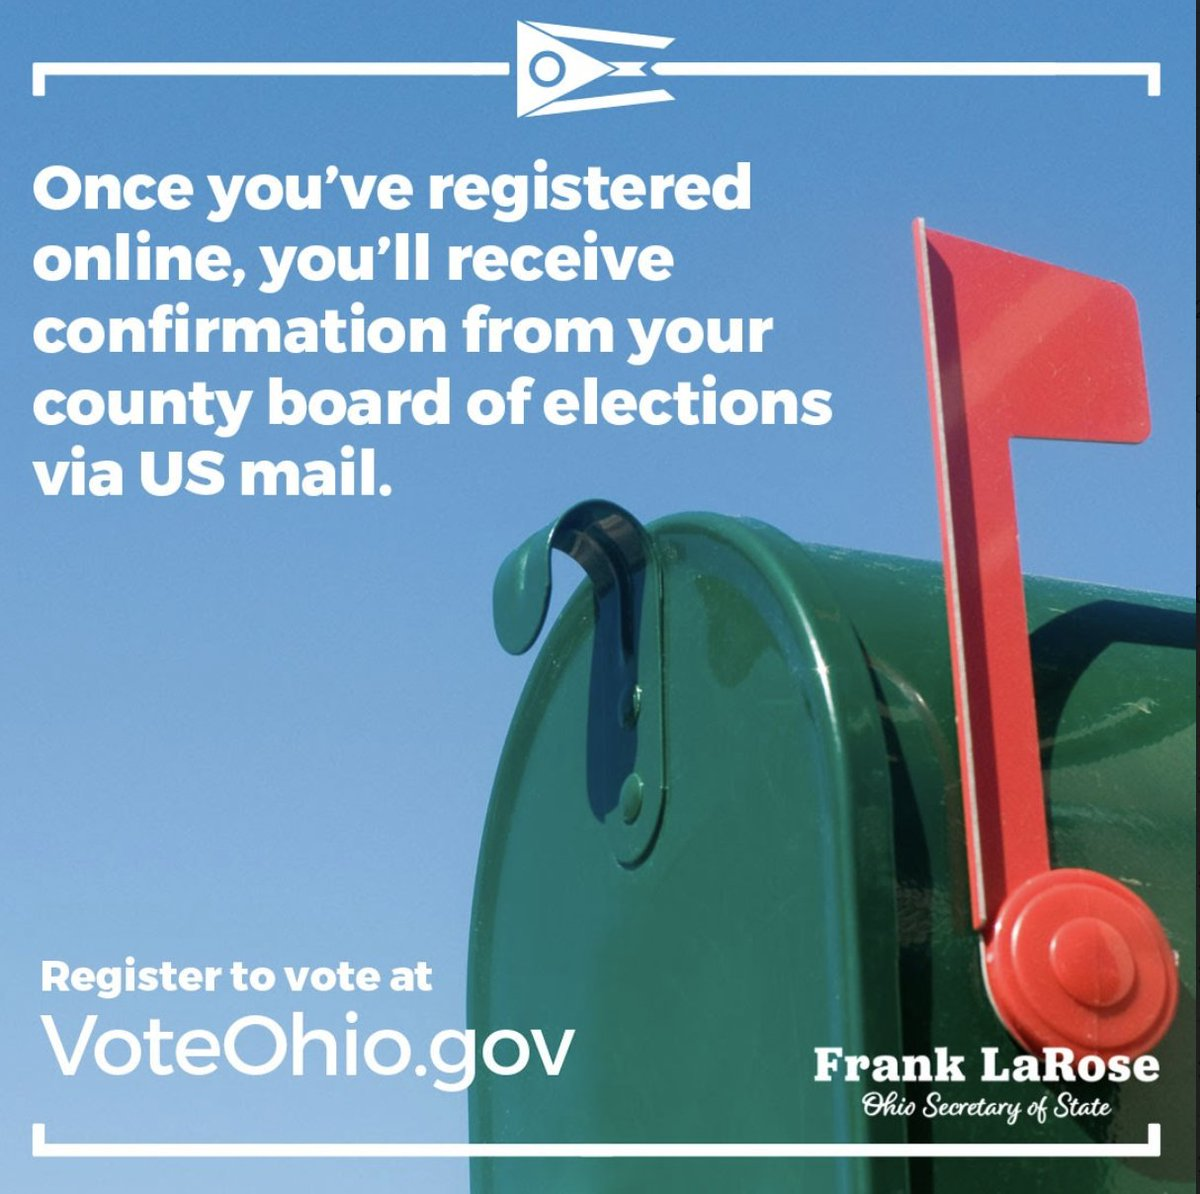 RT @LorainCoBOE: If you're newly registered to vote, keep an eye out for a confirmation letter!